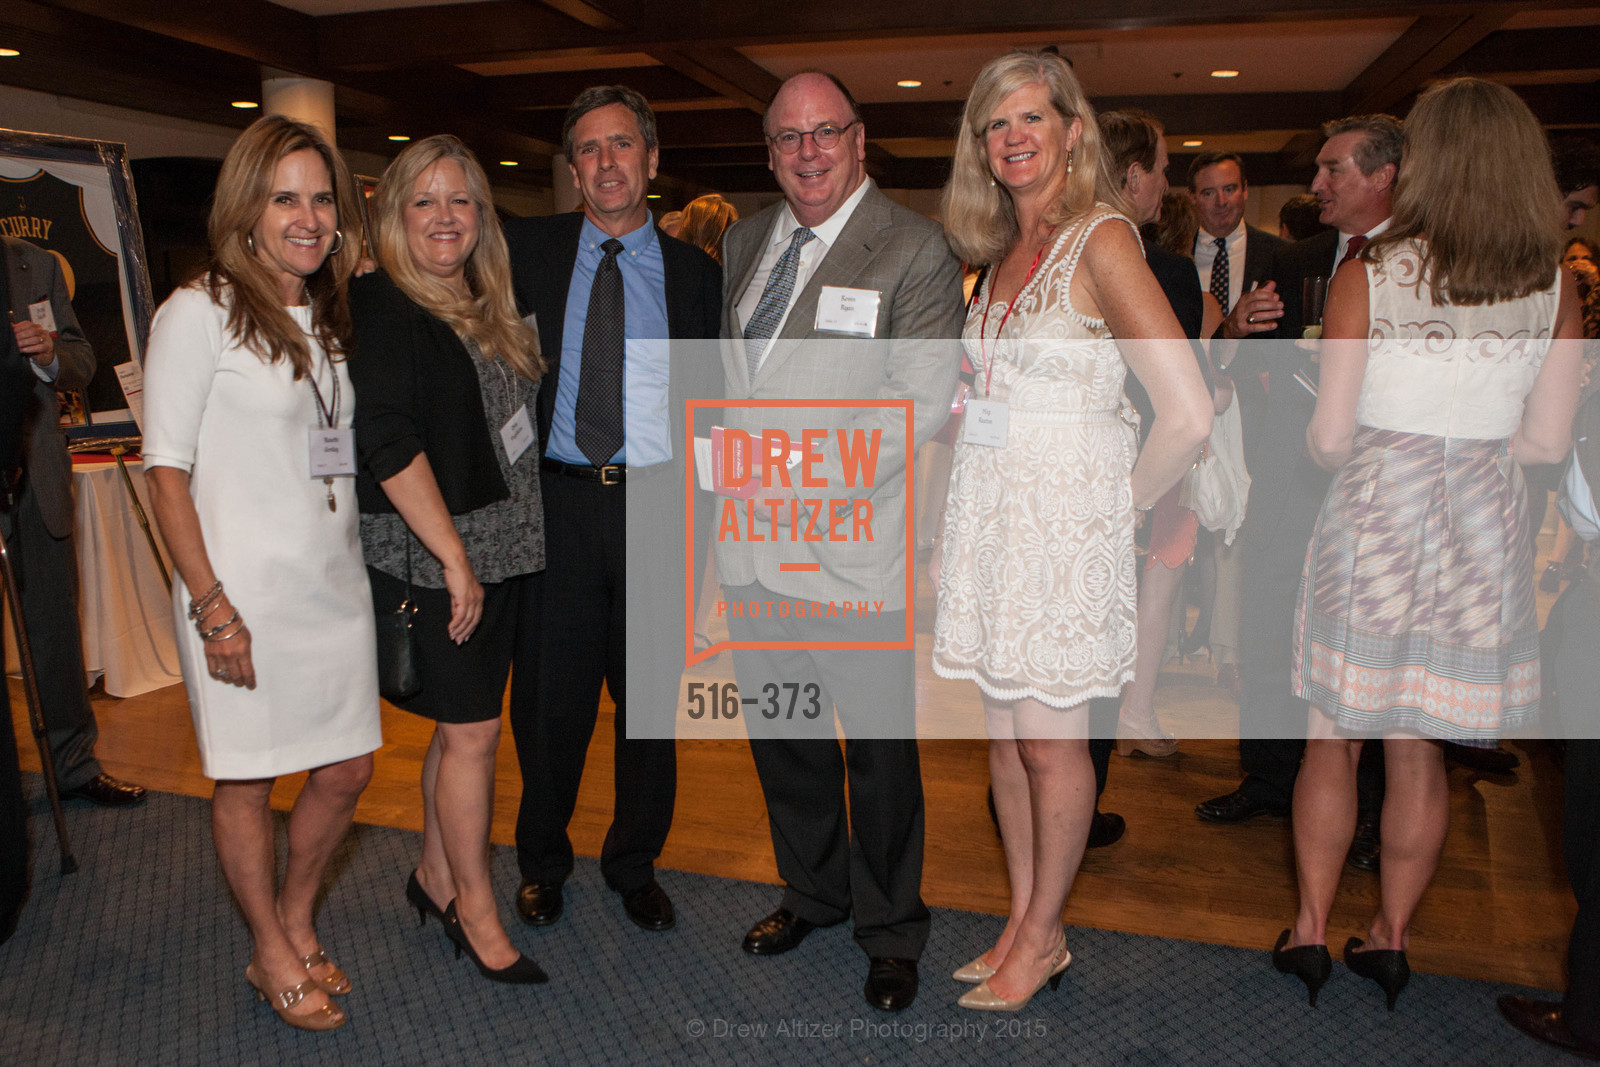 Nanette Gordon, Chris Vogelheim, Tom Vogelheim, Kevin Ryan, Meg Ruxton, Sovereign Order of Malta Presents: A Knight for Champions, 7th Annual Silver Chalice Awards Dinner, St. Francis Yacht Club. 99 Yacht Rd, October 13th, 2015,Drew Altizer, Drew Altizer Photography, full-service event agency, private events, San Francisco photographer, photographer California